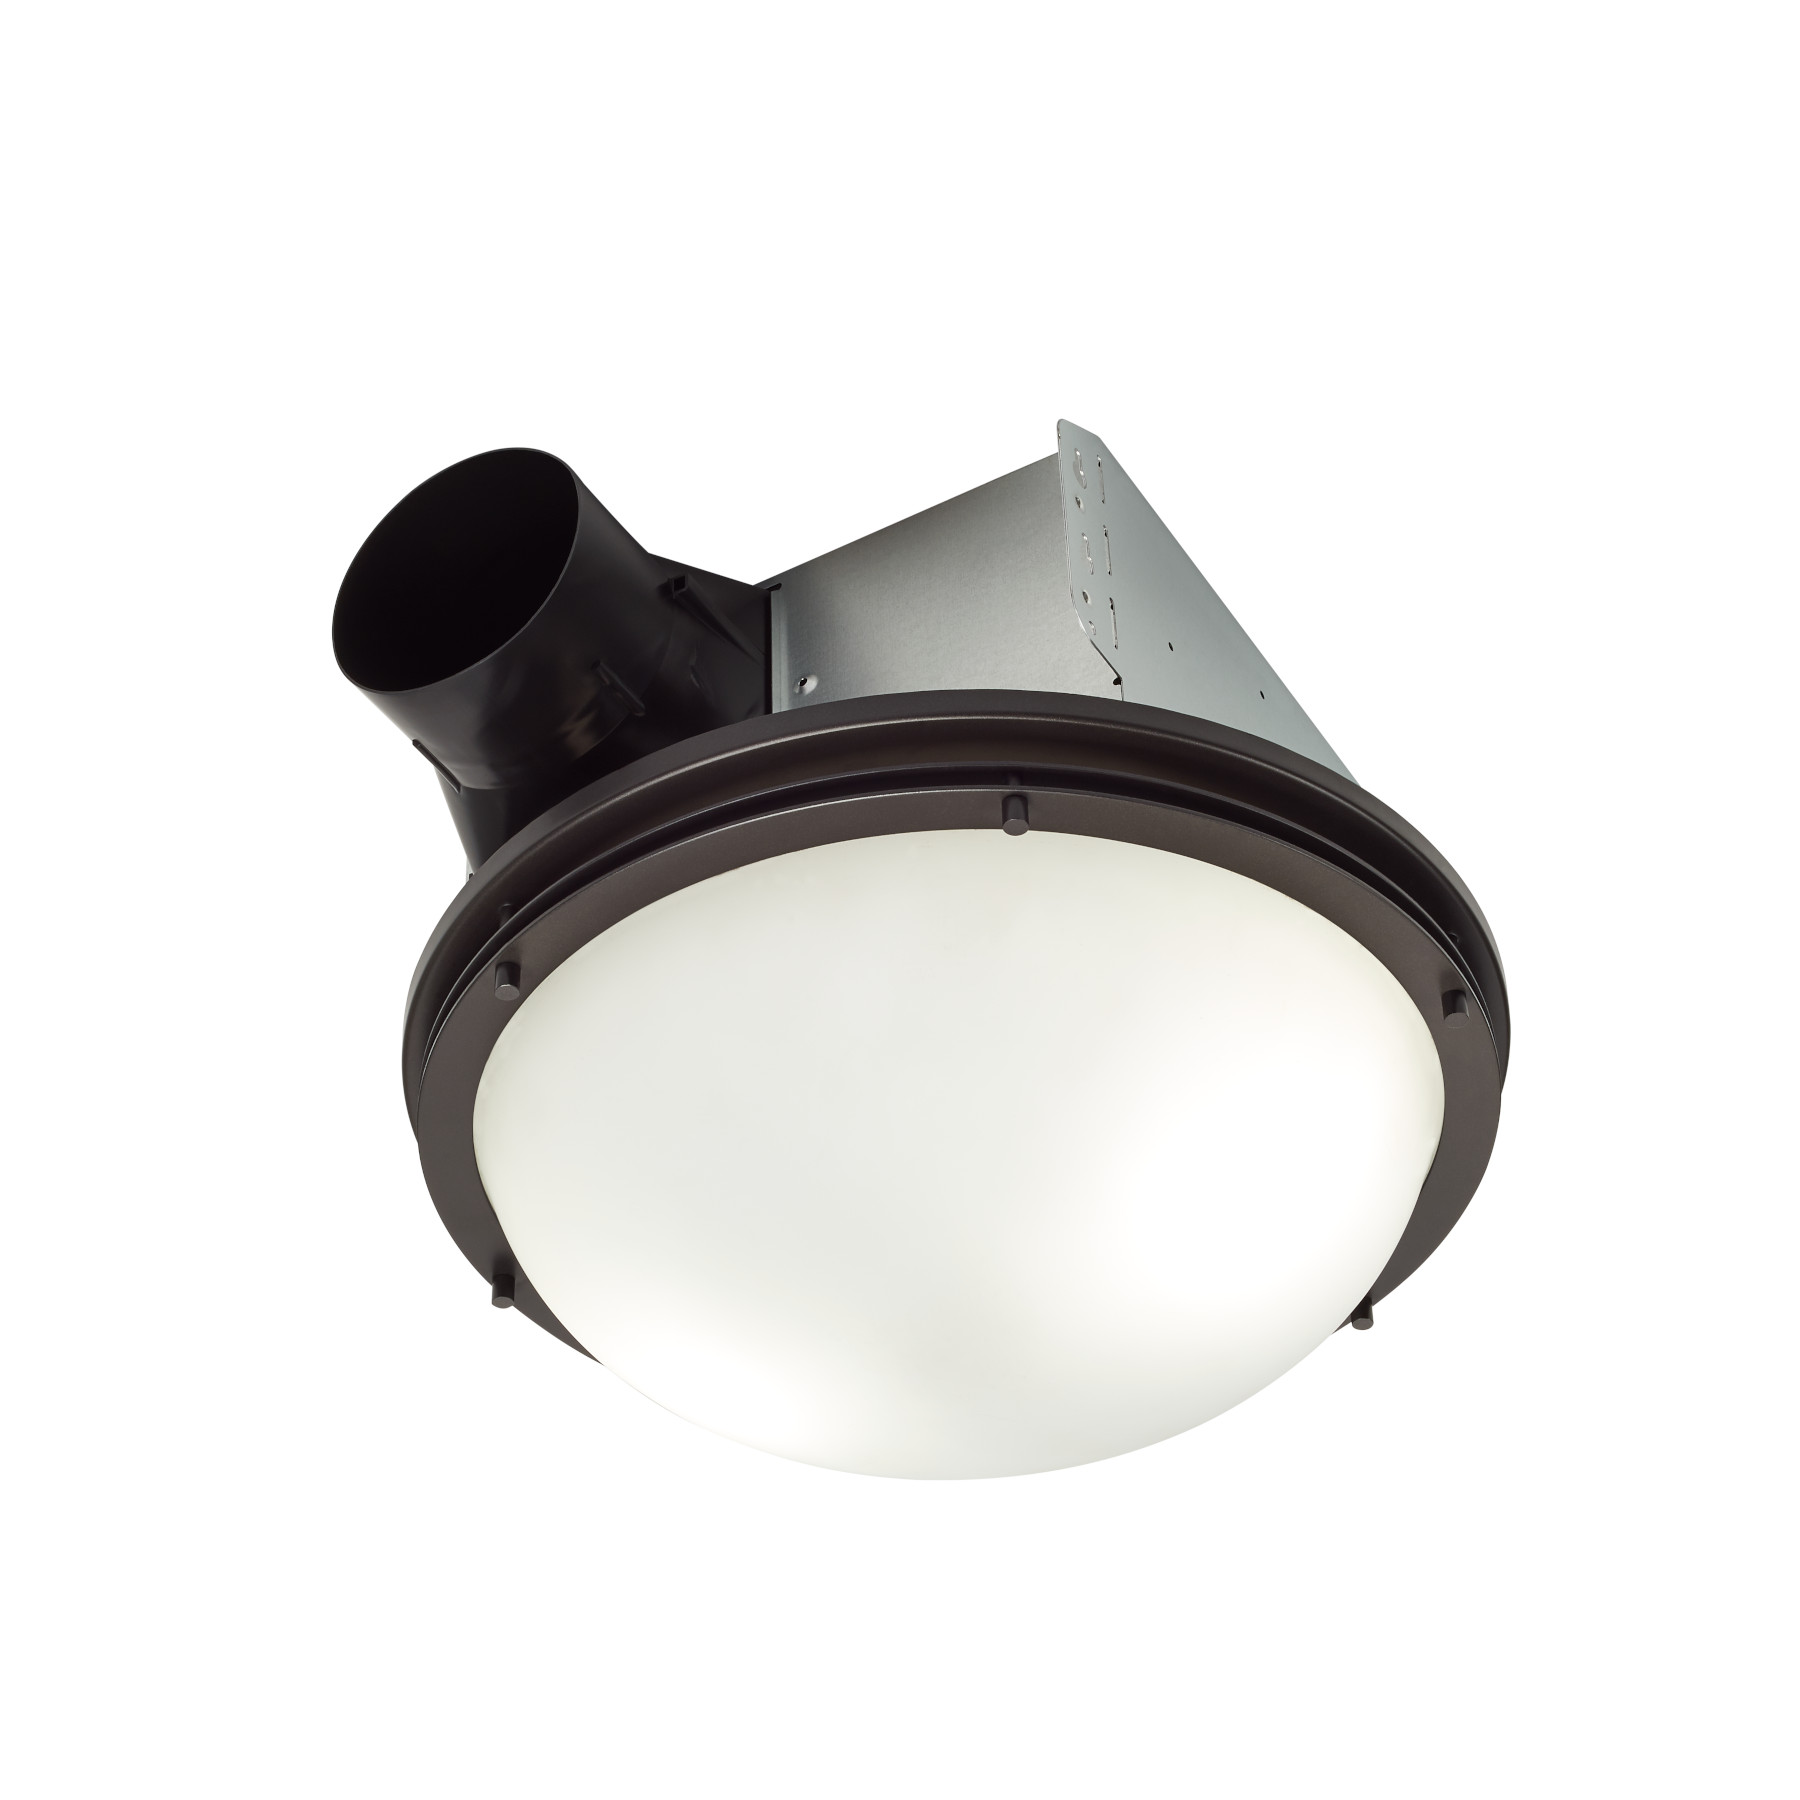 Decorative Oil-Rubbed Bronze 80 CFM  Roomside Installation Bathroom Exhaust Fan w/ Light and White Globe